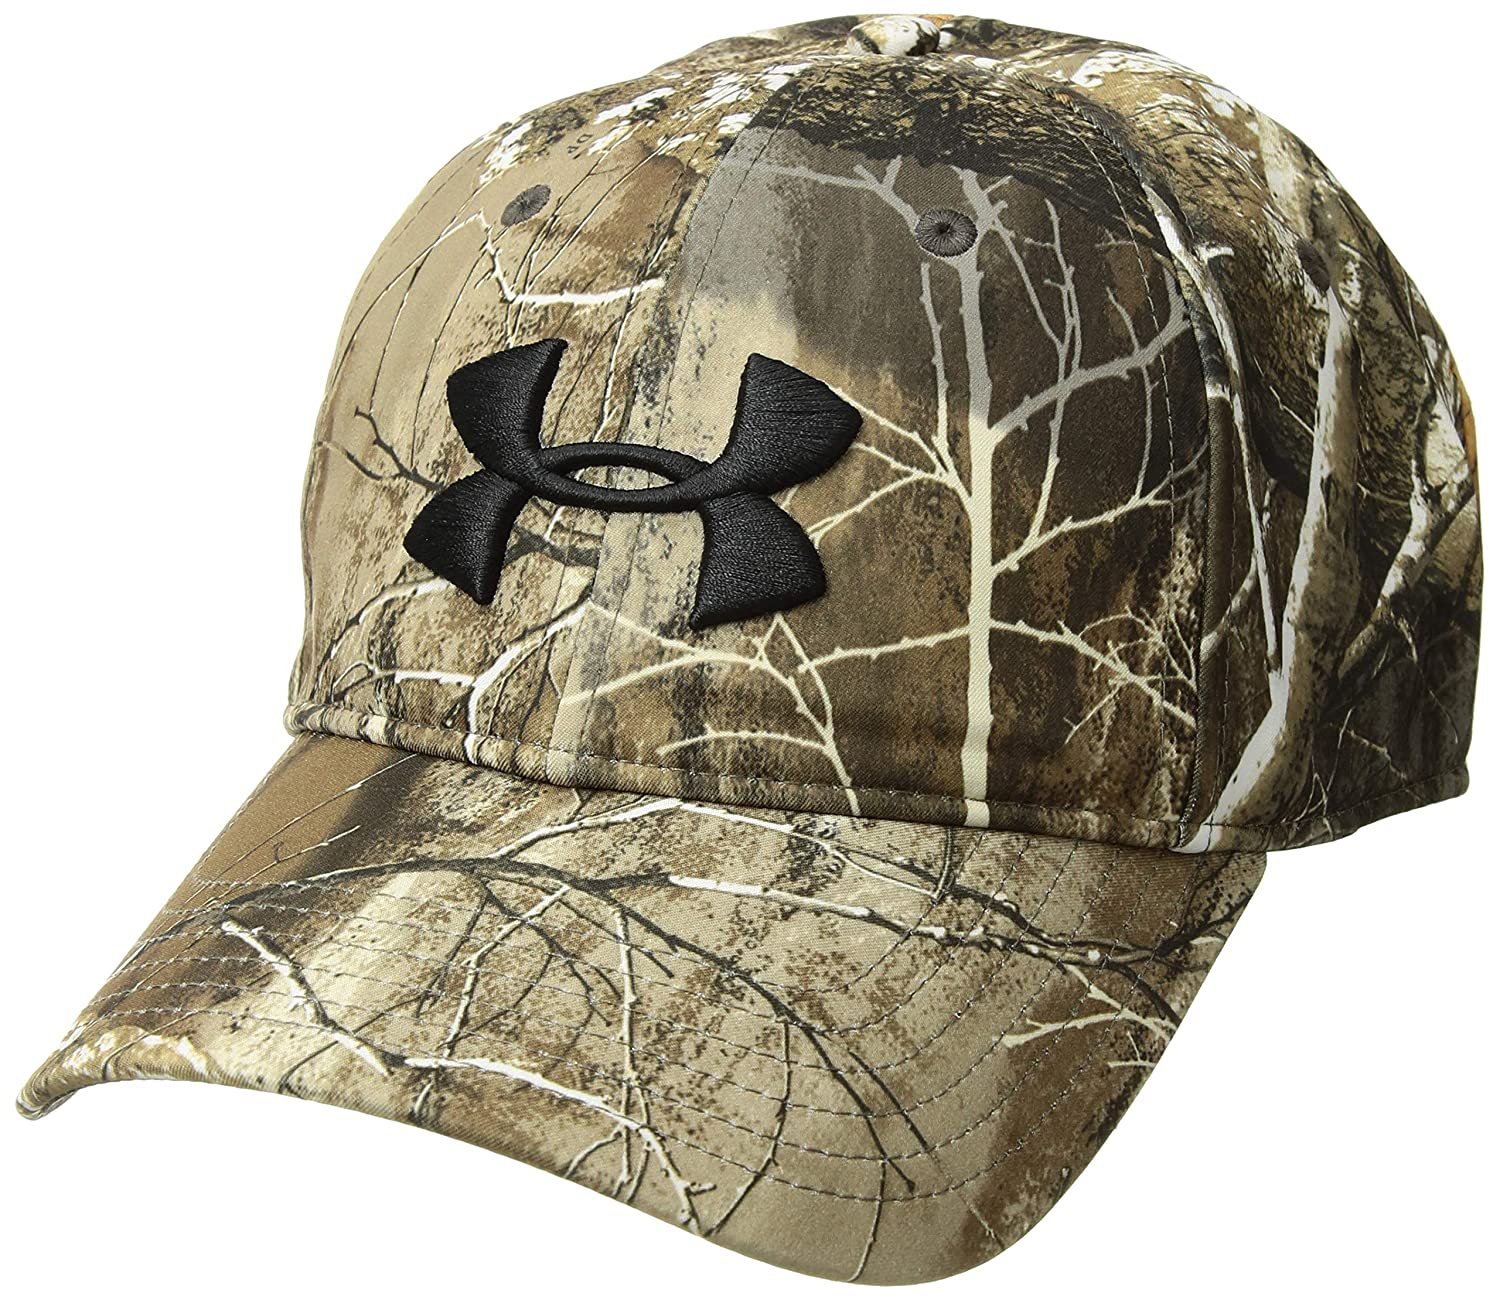 4539be019b0 Amazon.com  Under Armour  Sports   Outdoors